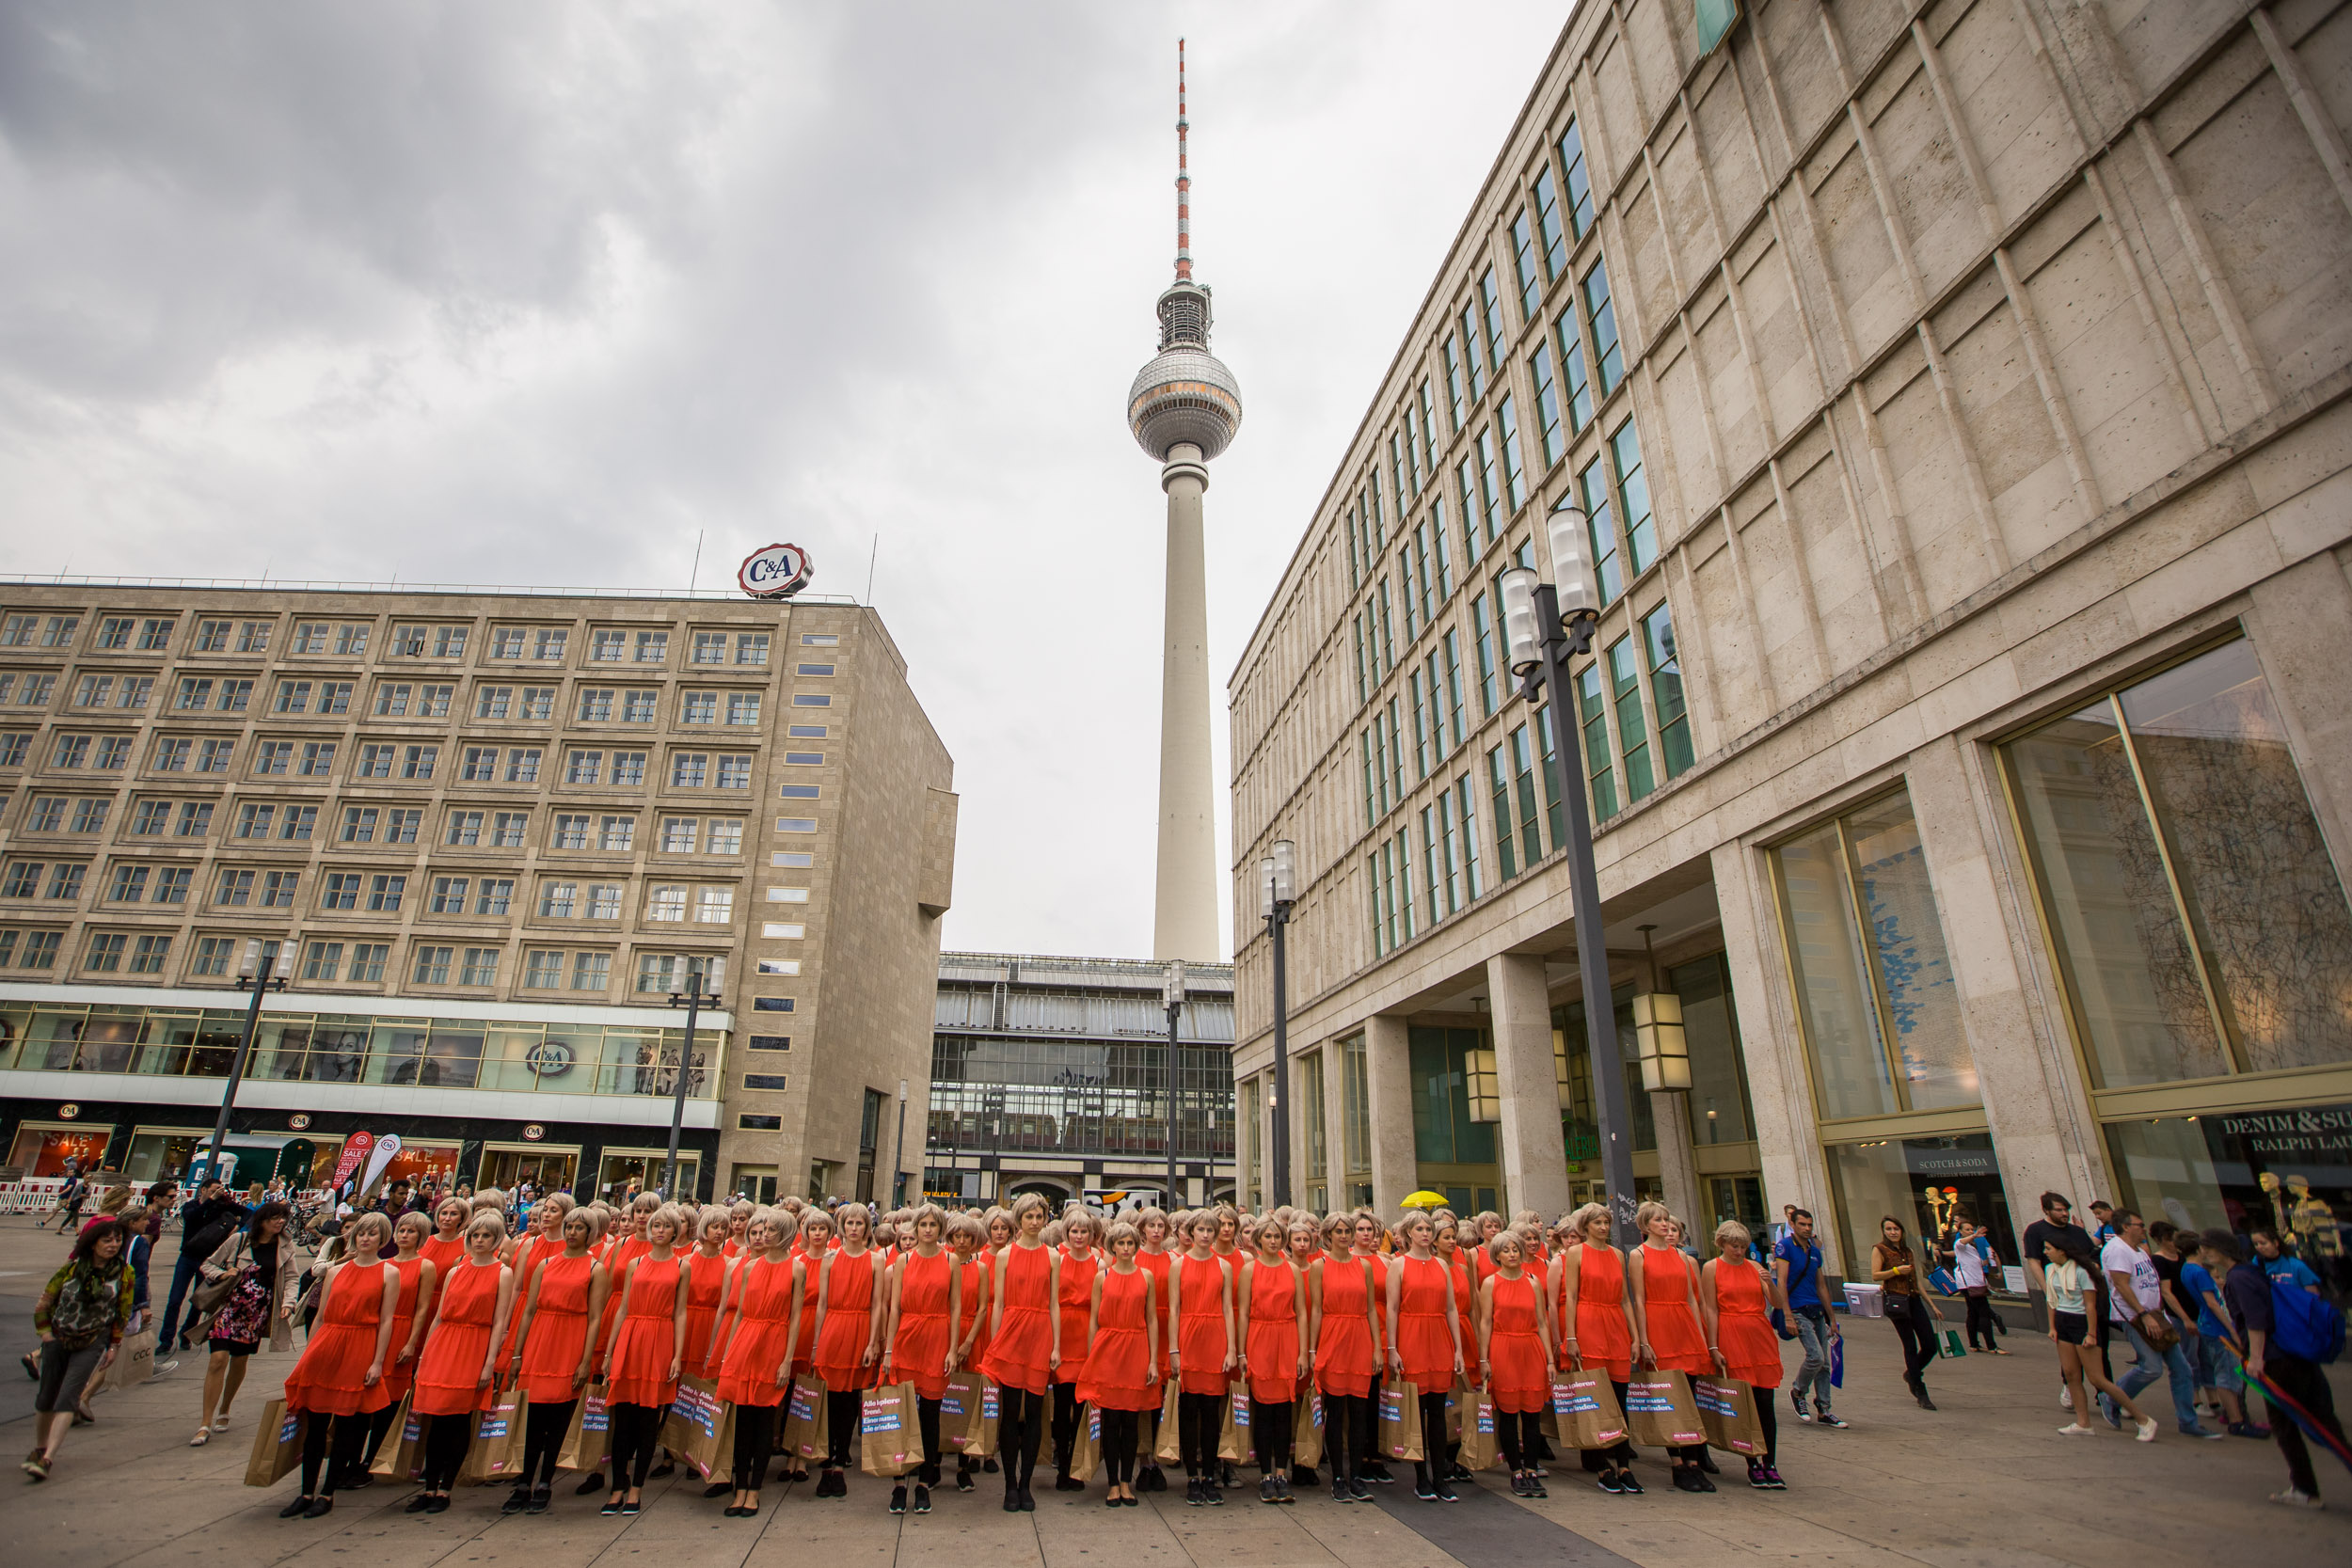 Flashmob Berlin Alexanderplatz 17